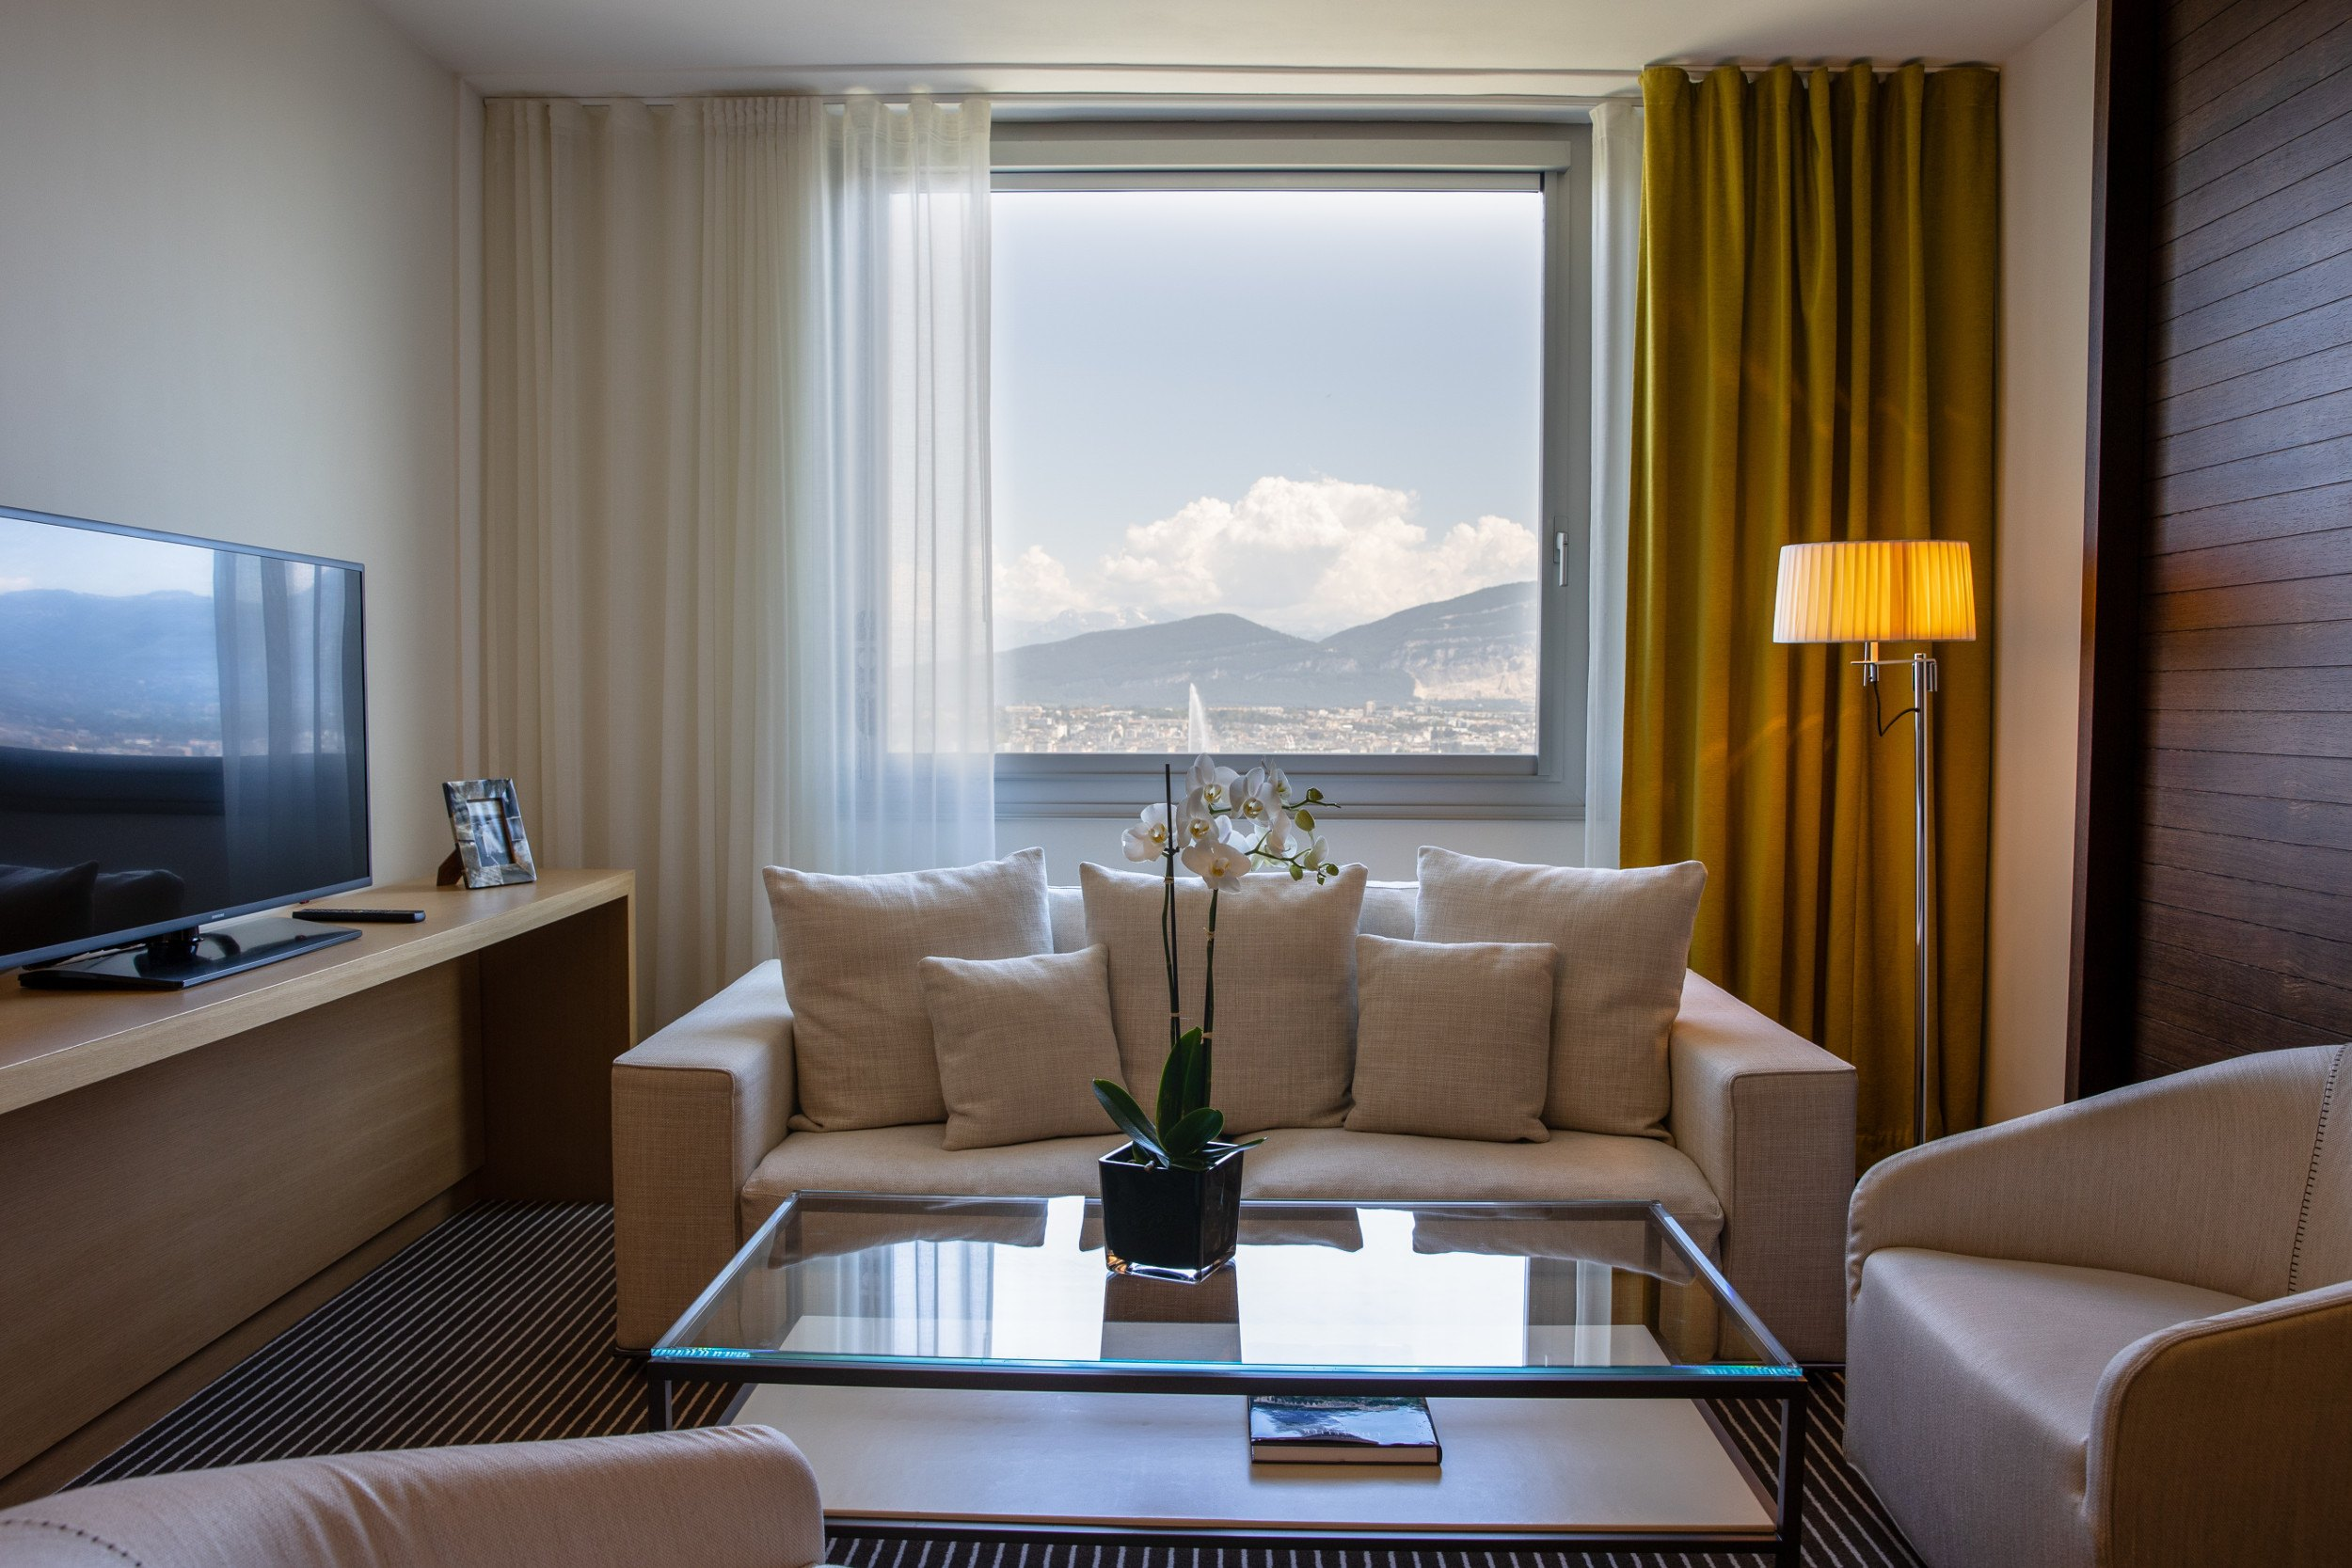 InterContinental-Geneva-Hotel-Executive-room-4